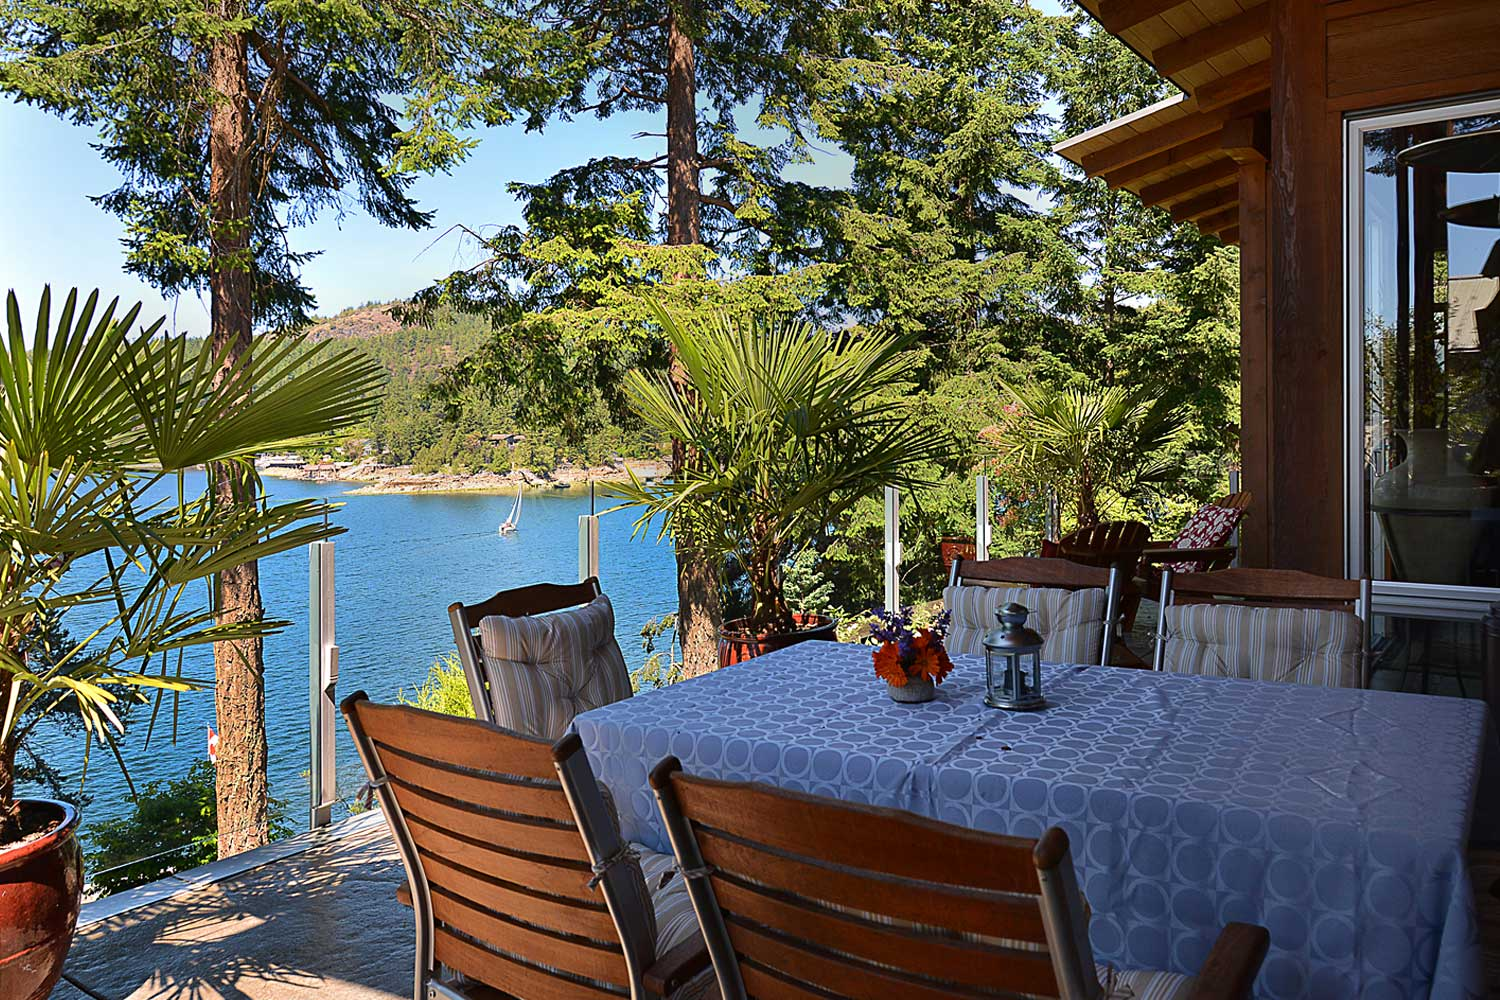 A sailboat can be seen cruising on the water from the outdoor dining area of this Pender Harbour accommodation.